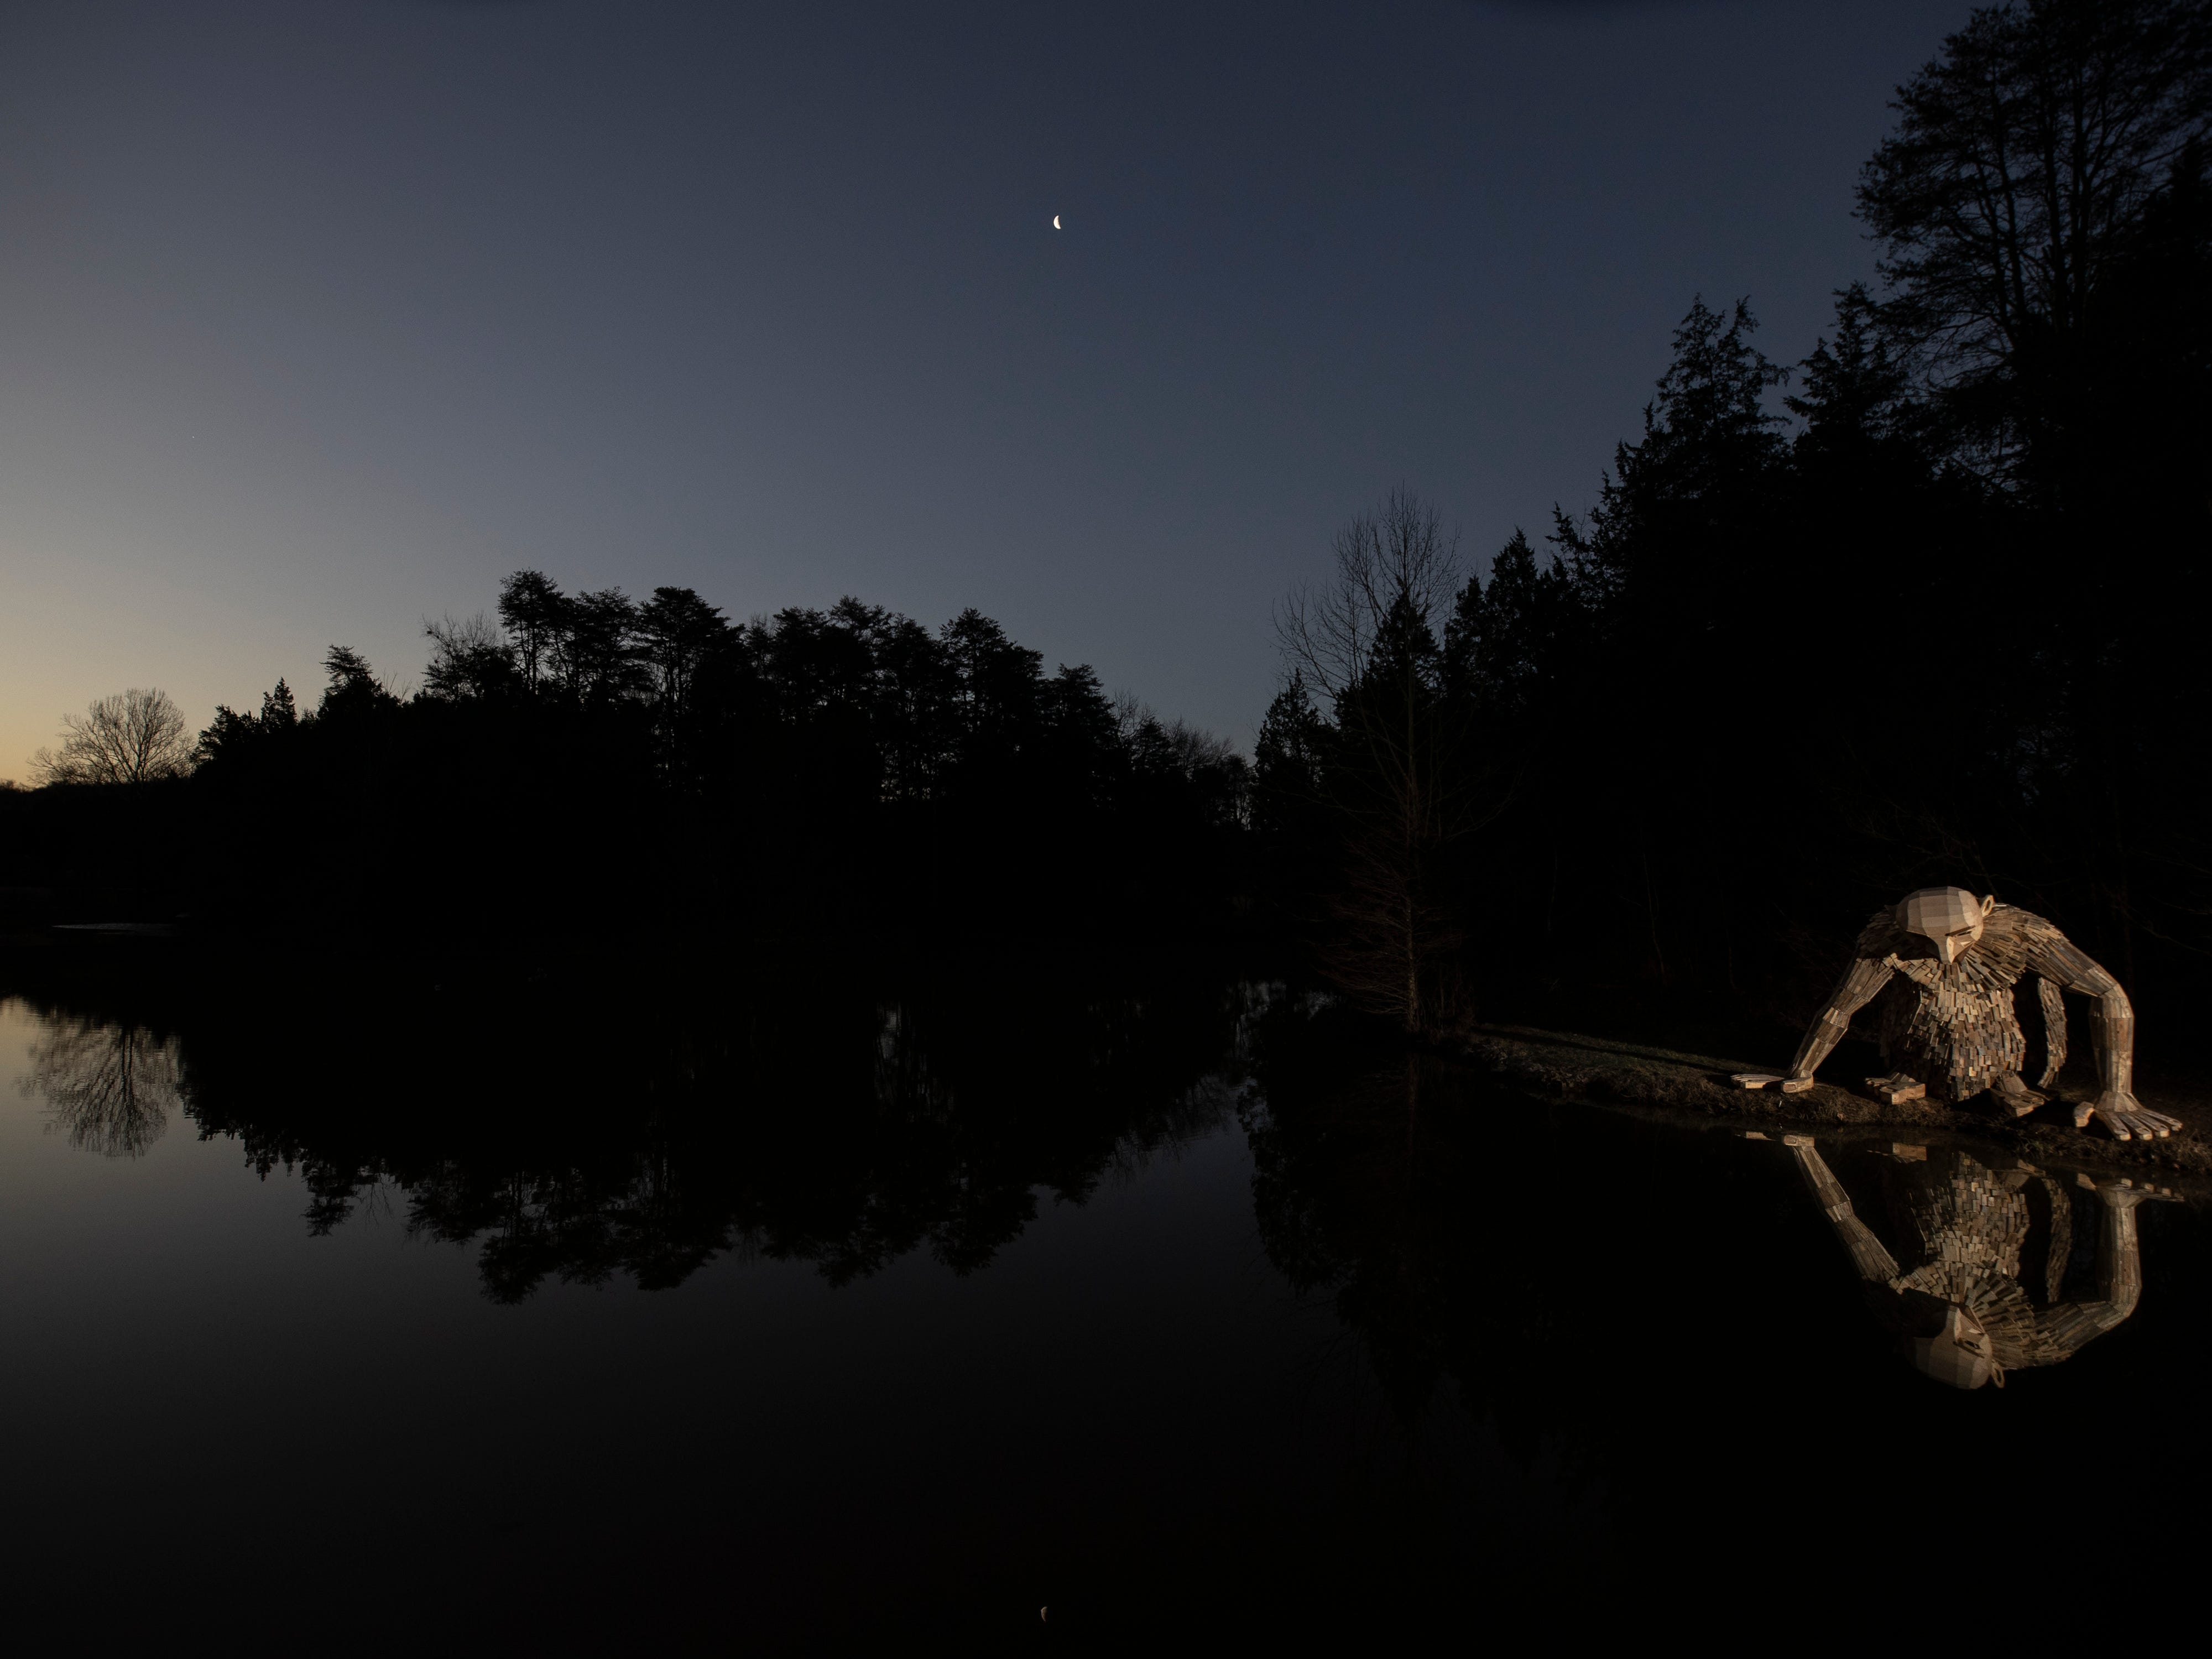 """""""Little Nis"""" gazes into the waters of Holly Pond at Bernheim Forest. His is one of three giant trolls created by sculptor Thomas Dambo. Feb. 27, 2019."""